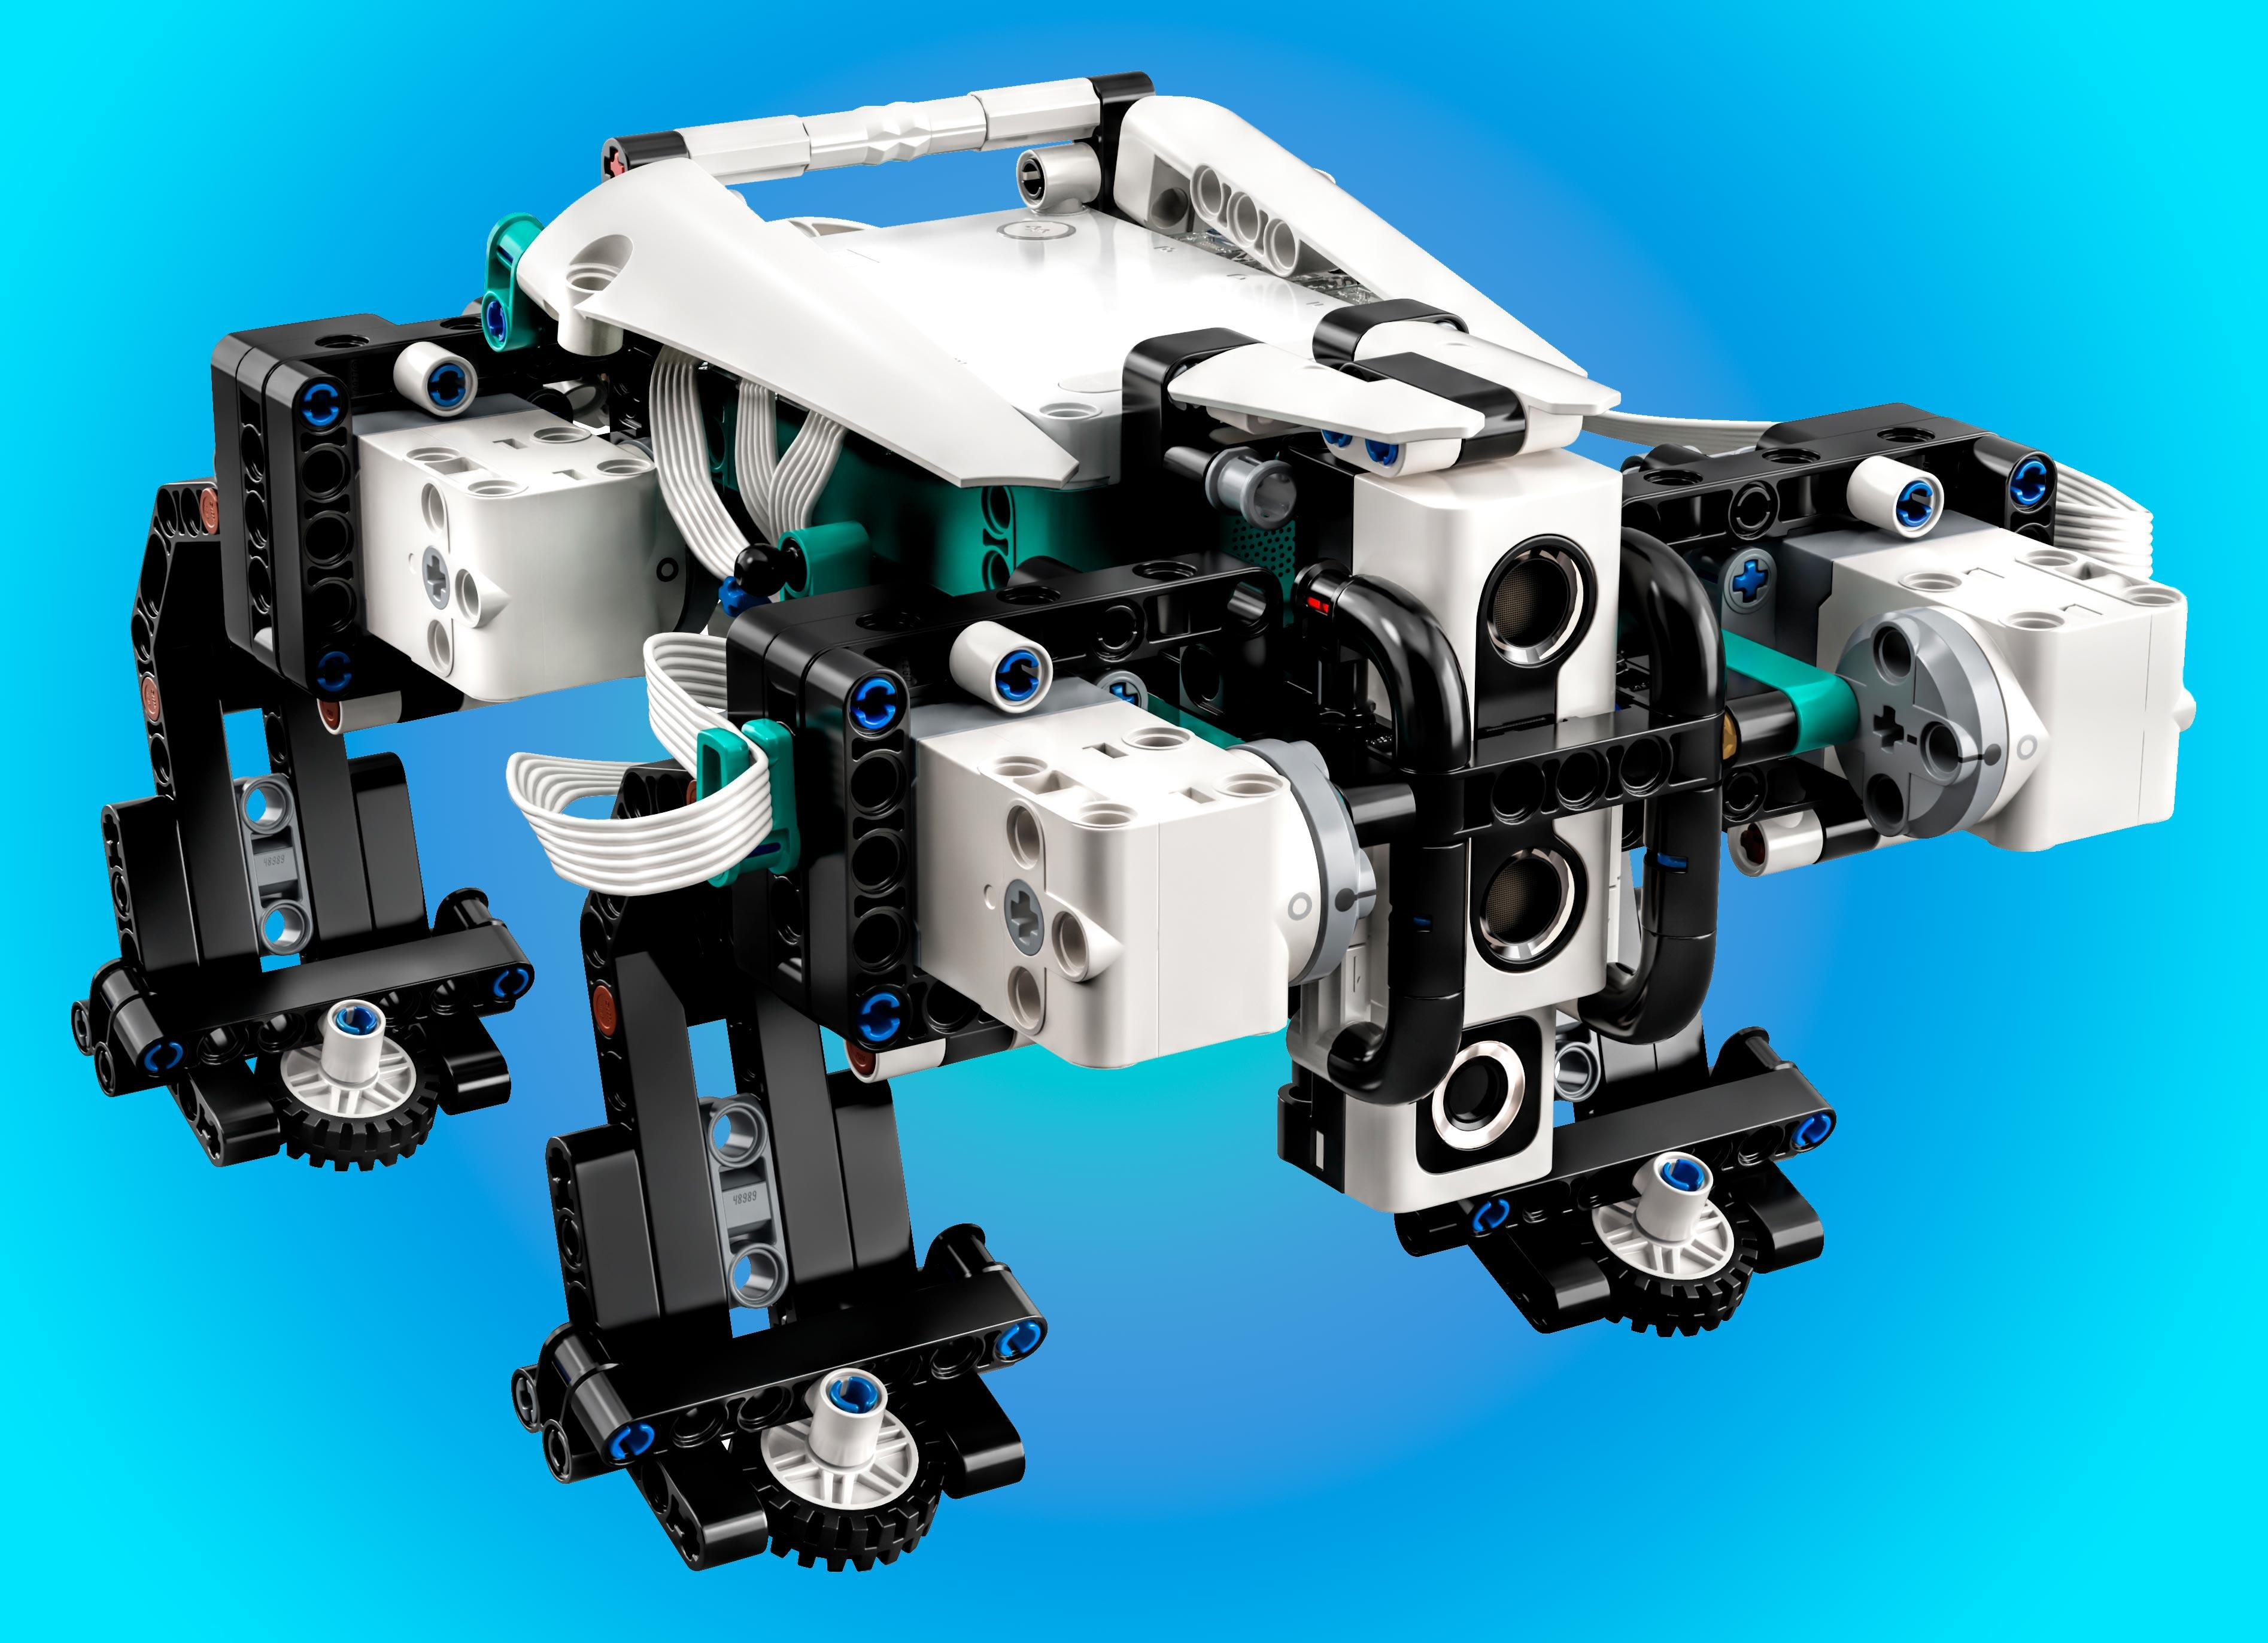 The Lego Mindstorms Gelo, a quadrupedal robot, is one of five programmable, computer controlled robots available in the Robot Inventor kit.